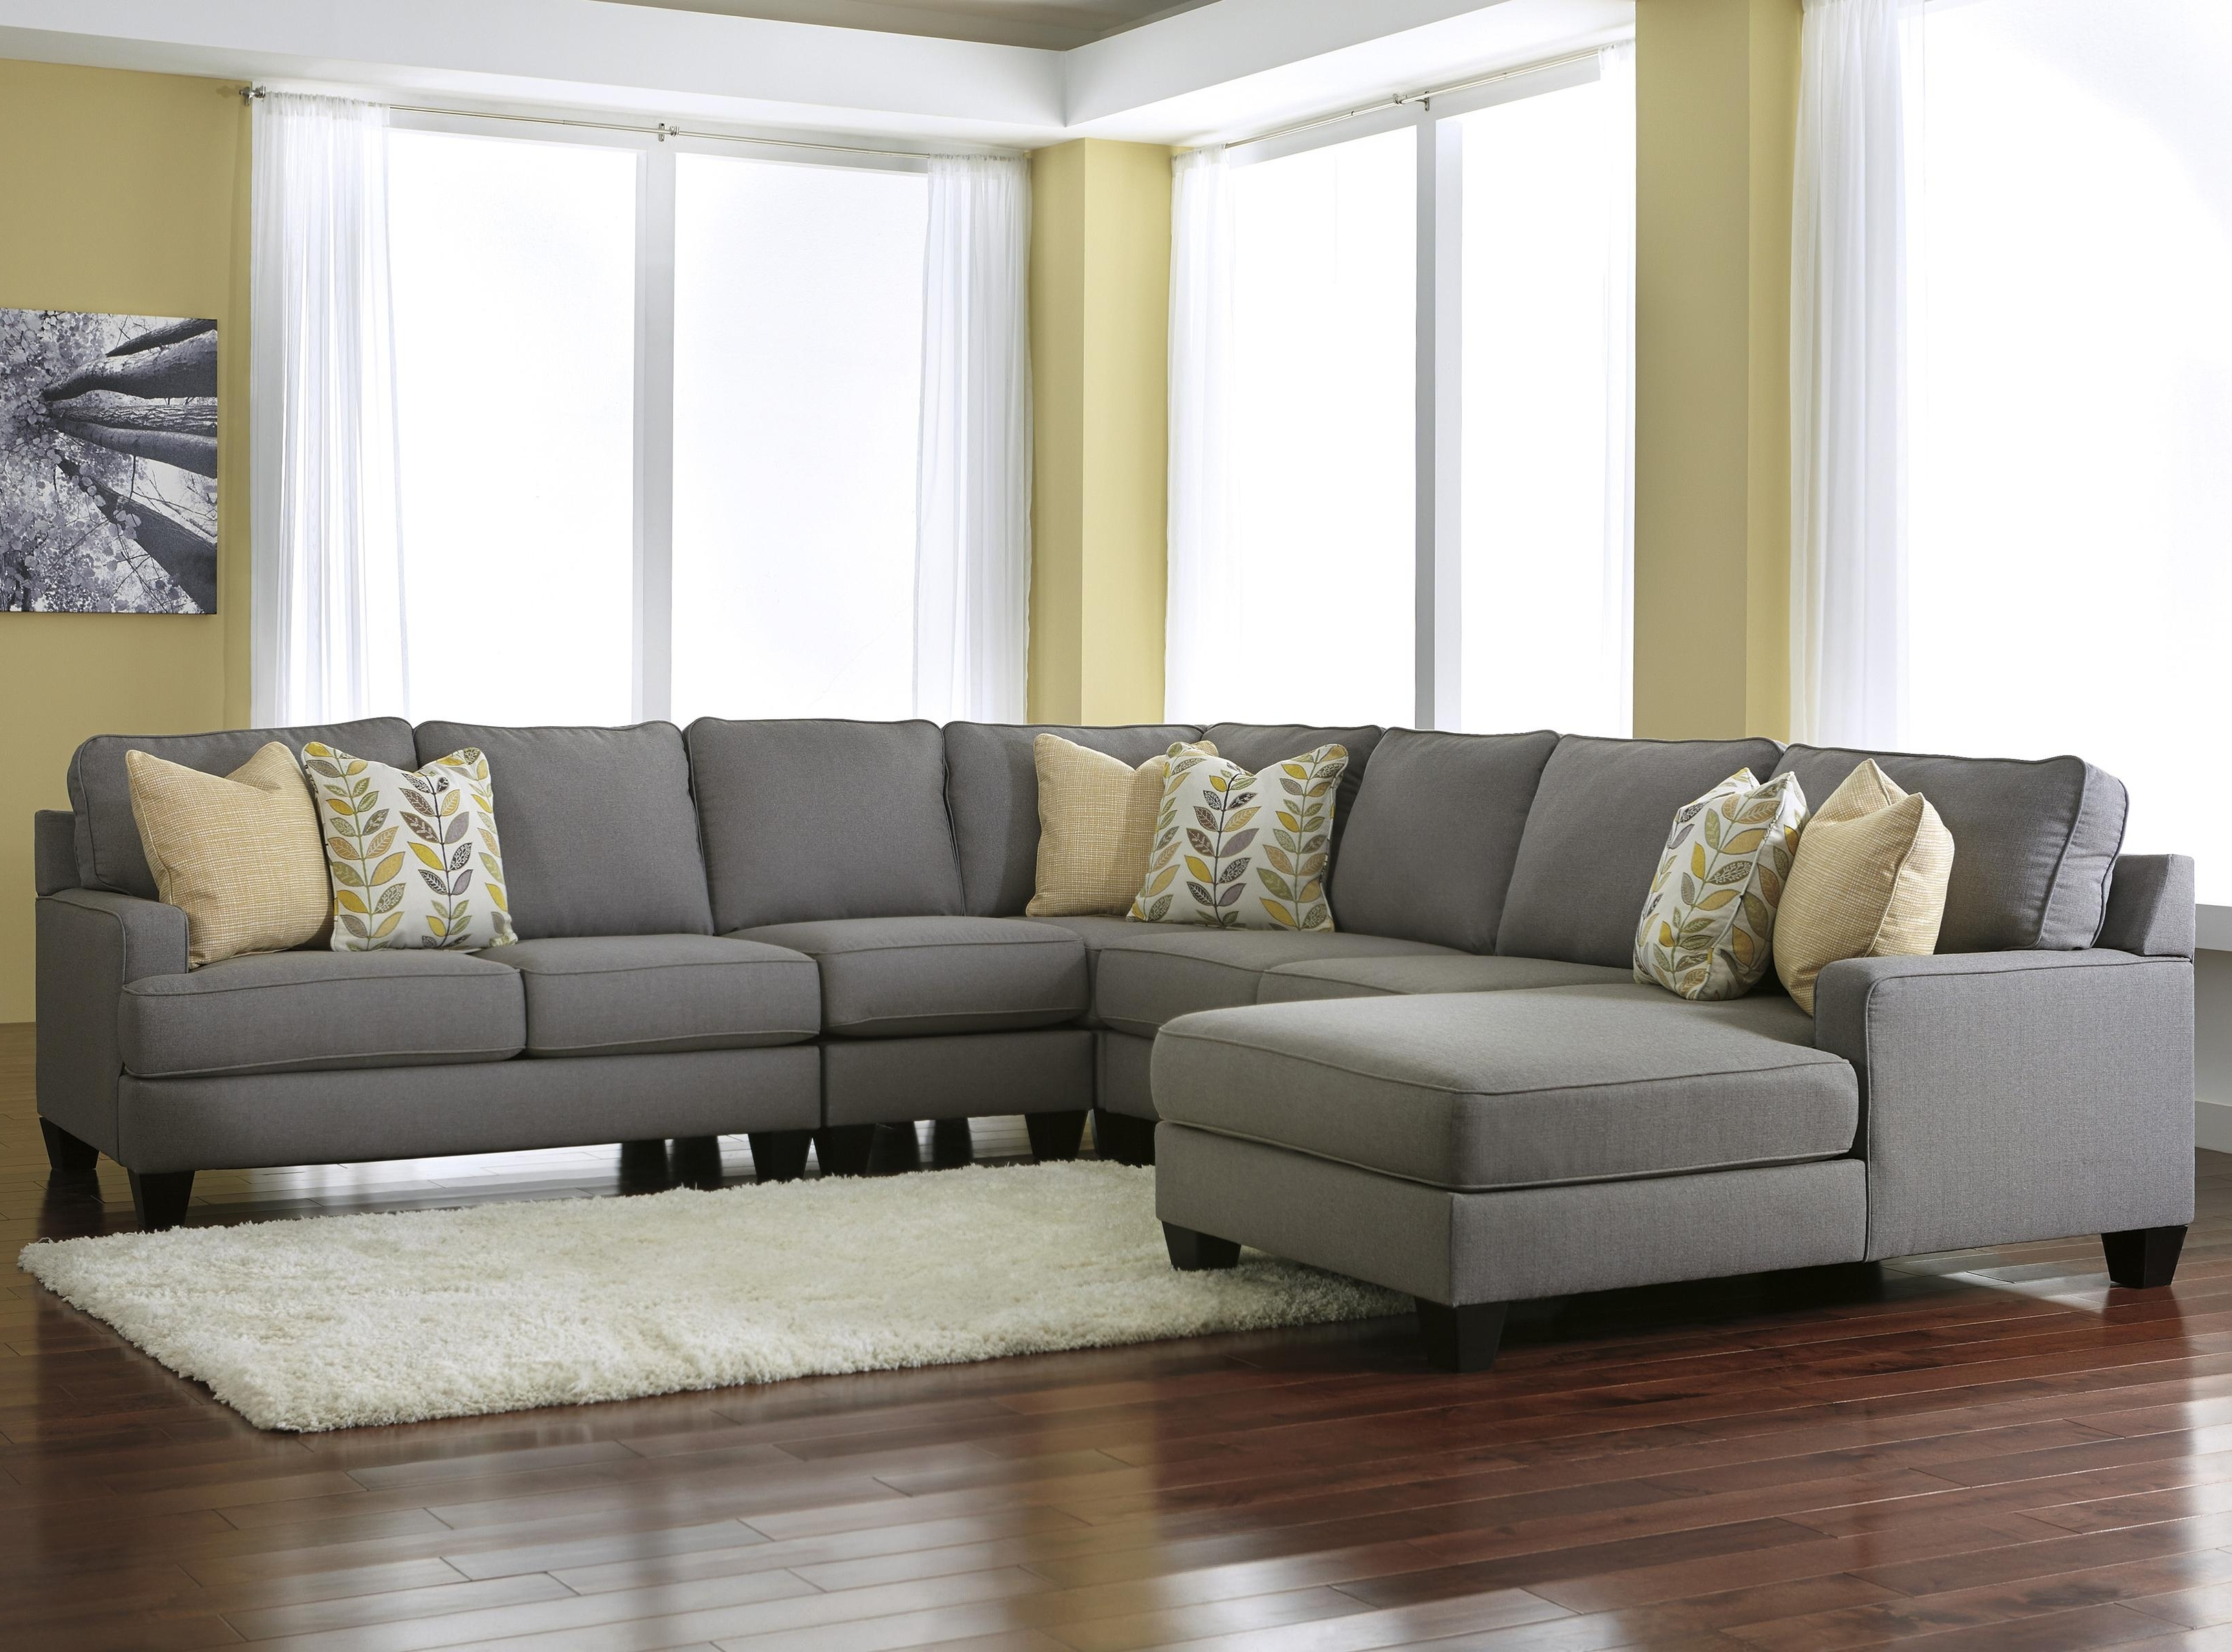 St Cloud Mn Sectional Sofas Regarding Most Up To Date Signature Designashley Chamberly – Alloy Modern 5 Piece (View 11 of 15)